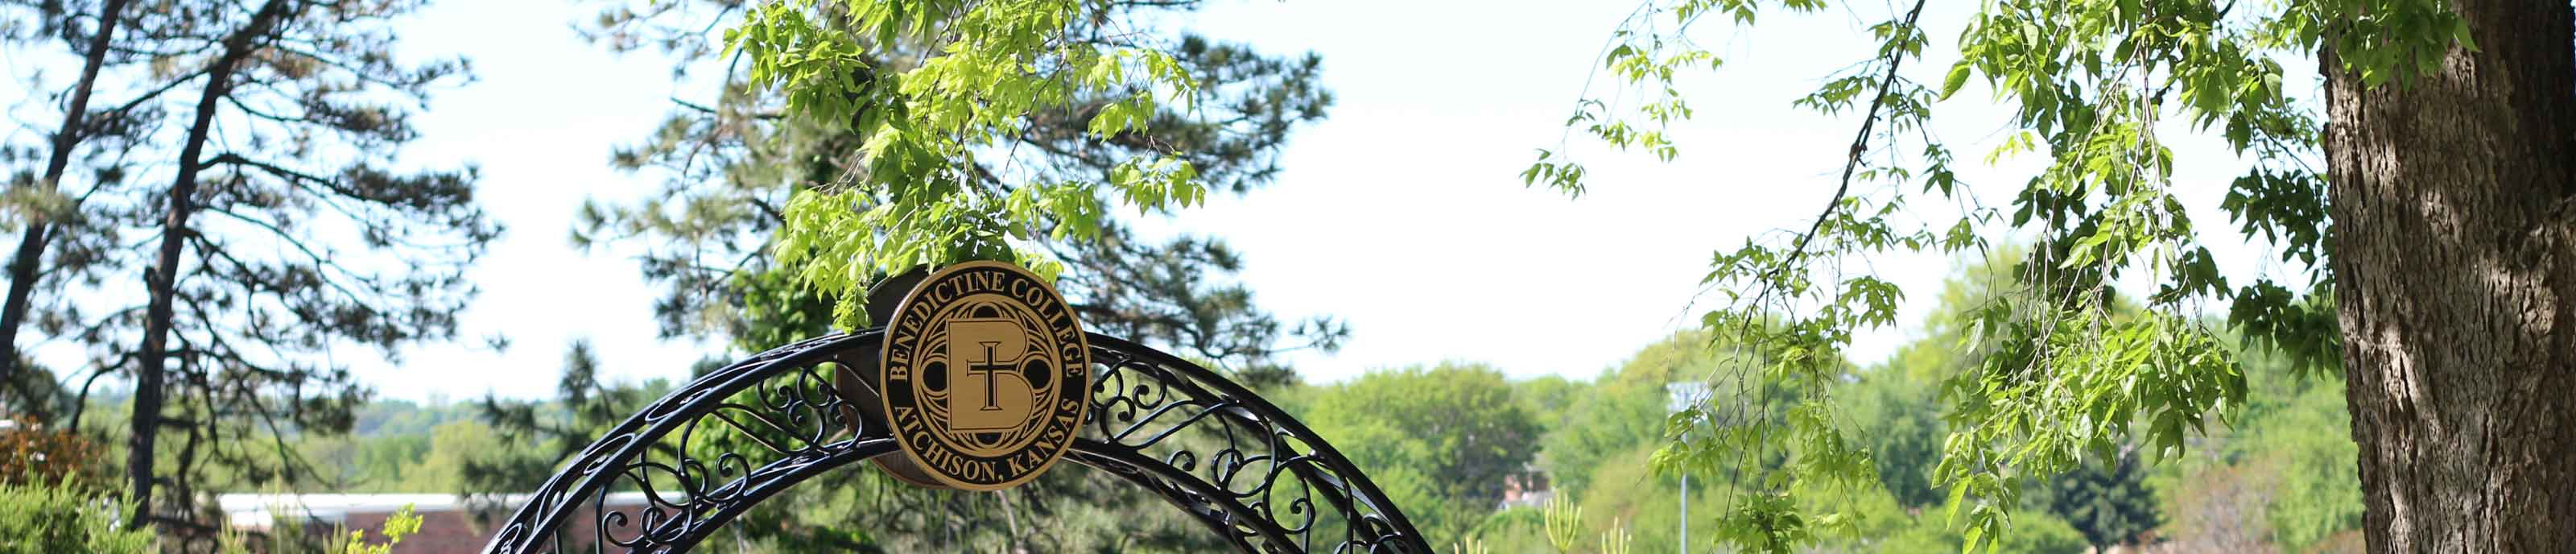 The Benedictine College Seal set atop the entry archway to Mary's Grotto